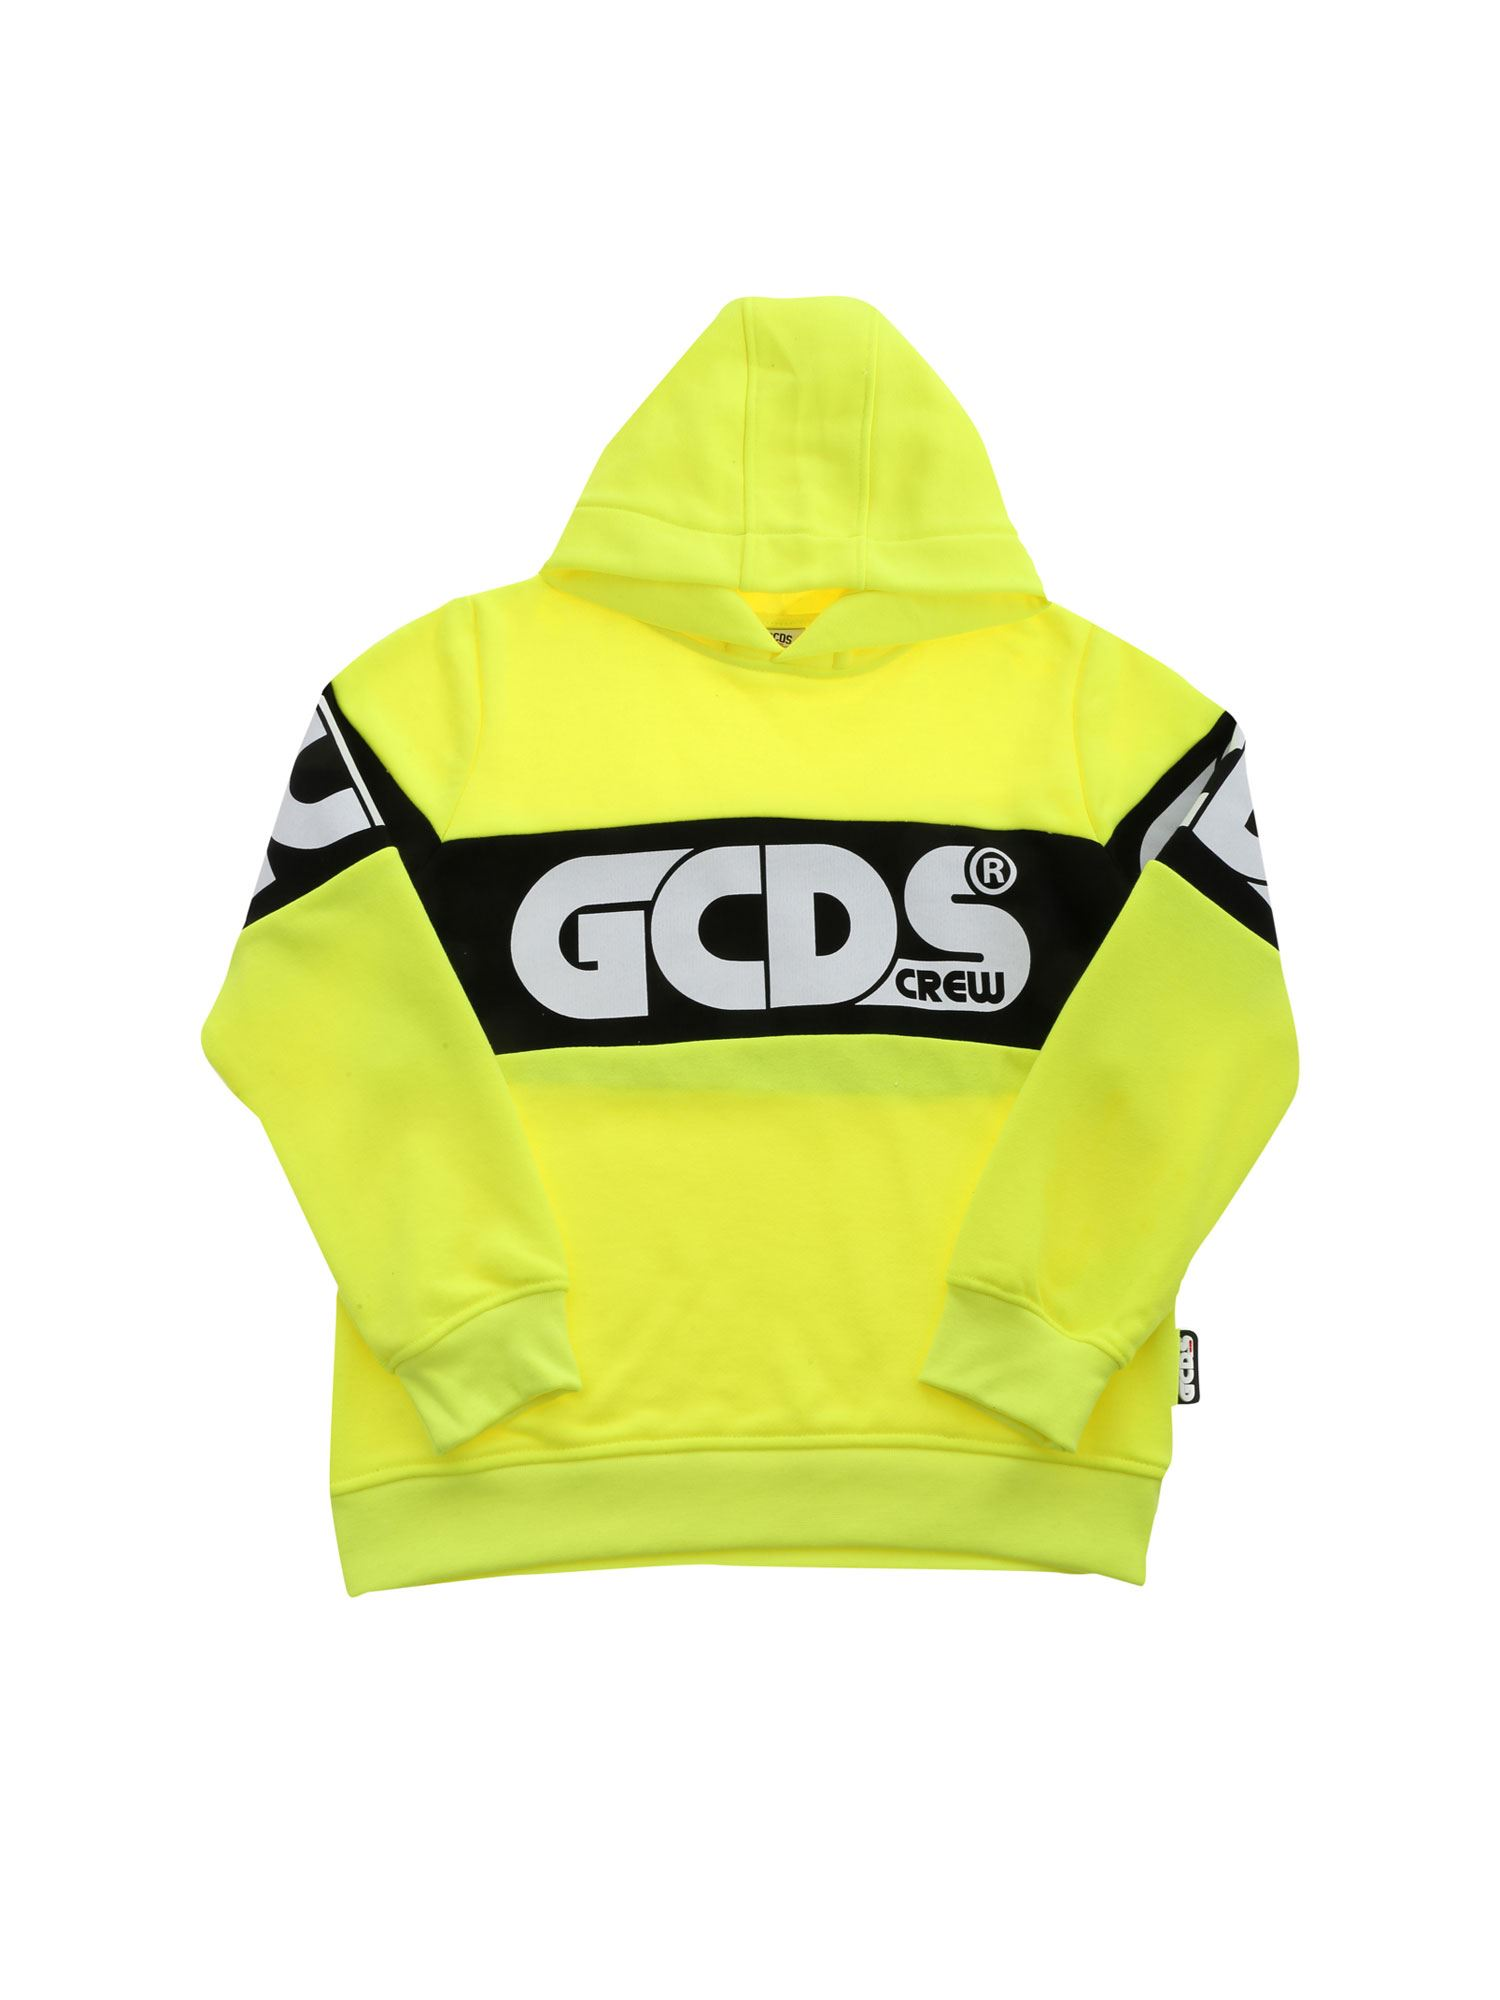 Gcds Cottons MAXI LOGO PRINT SWEATSHIRT IN YELLOW FLUO